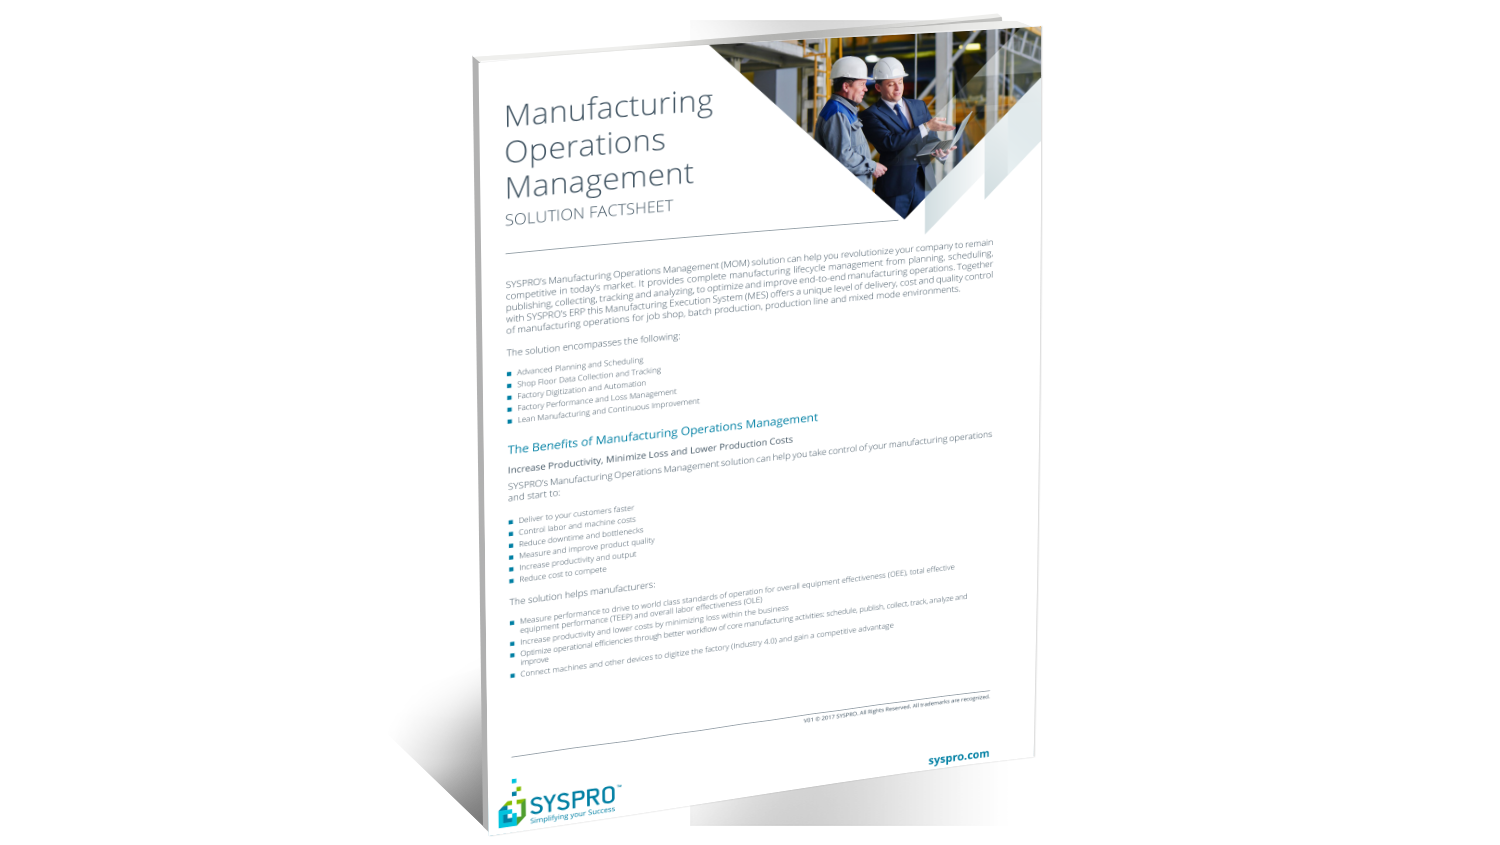 SYSPRO Manufacturing Operations Management – Factsheet